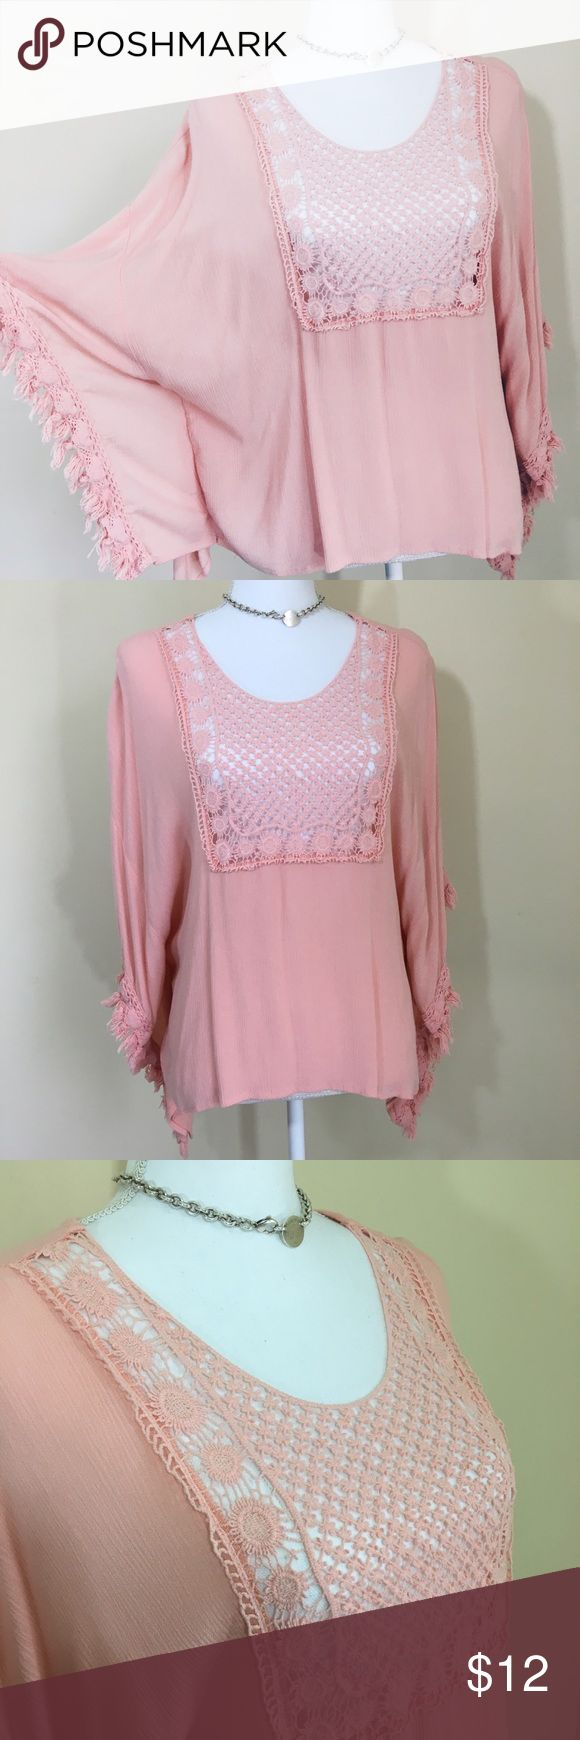 Batwing Top Beautiful pink colored bat wing sleeve with Crotchet like pattern on top. Boho chic inspired. NWOT has just been in storage from my move. Tops